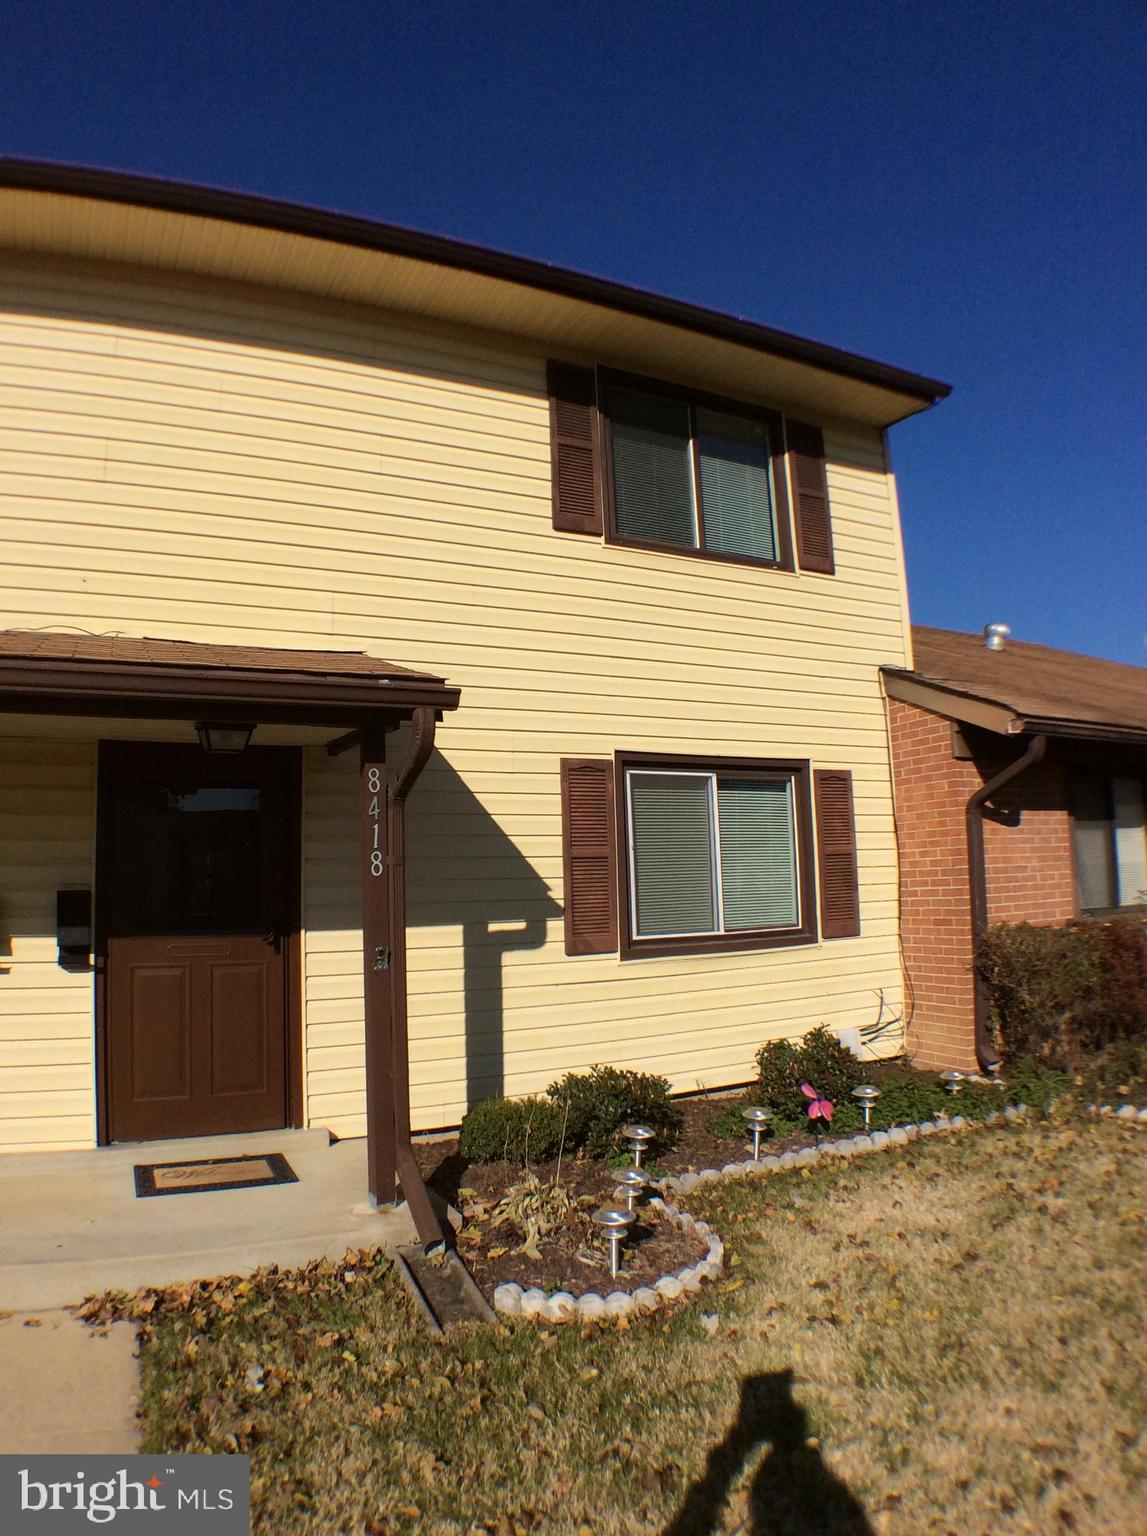 Rare opportunity and seldomly available !, Lovely well maintained townhouse condo in quiet Pinewood Lawns subdivision. Two level Redondo Model features three bedrooms, one full bathroom and 1 half bathroom, Recently redone kitchen to include Granite ,Cabinetry,Stainless Appliances. Both bathrooms were redone 2 years ago,Spacious living room with vinyl plank flooring leading to large eat-in kitchen. Glass door which opens to enclosed patio area and parking garage.  Adjacent to Ft Belvoir, Minutes to I95,495,FFX County Parkway,Richmond Hwy , Owner licensed Agent . No sign on property